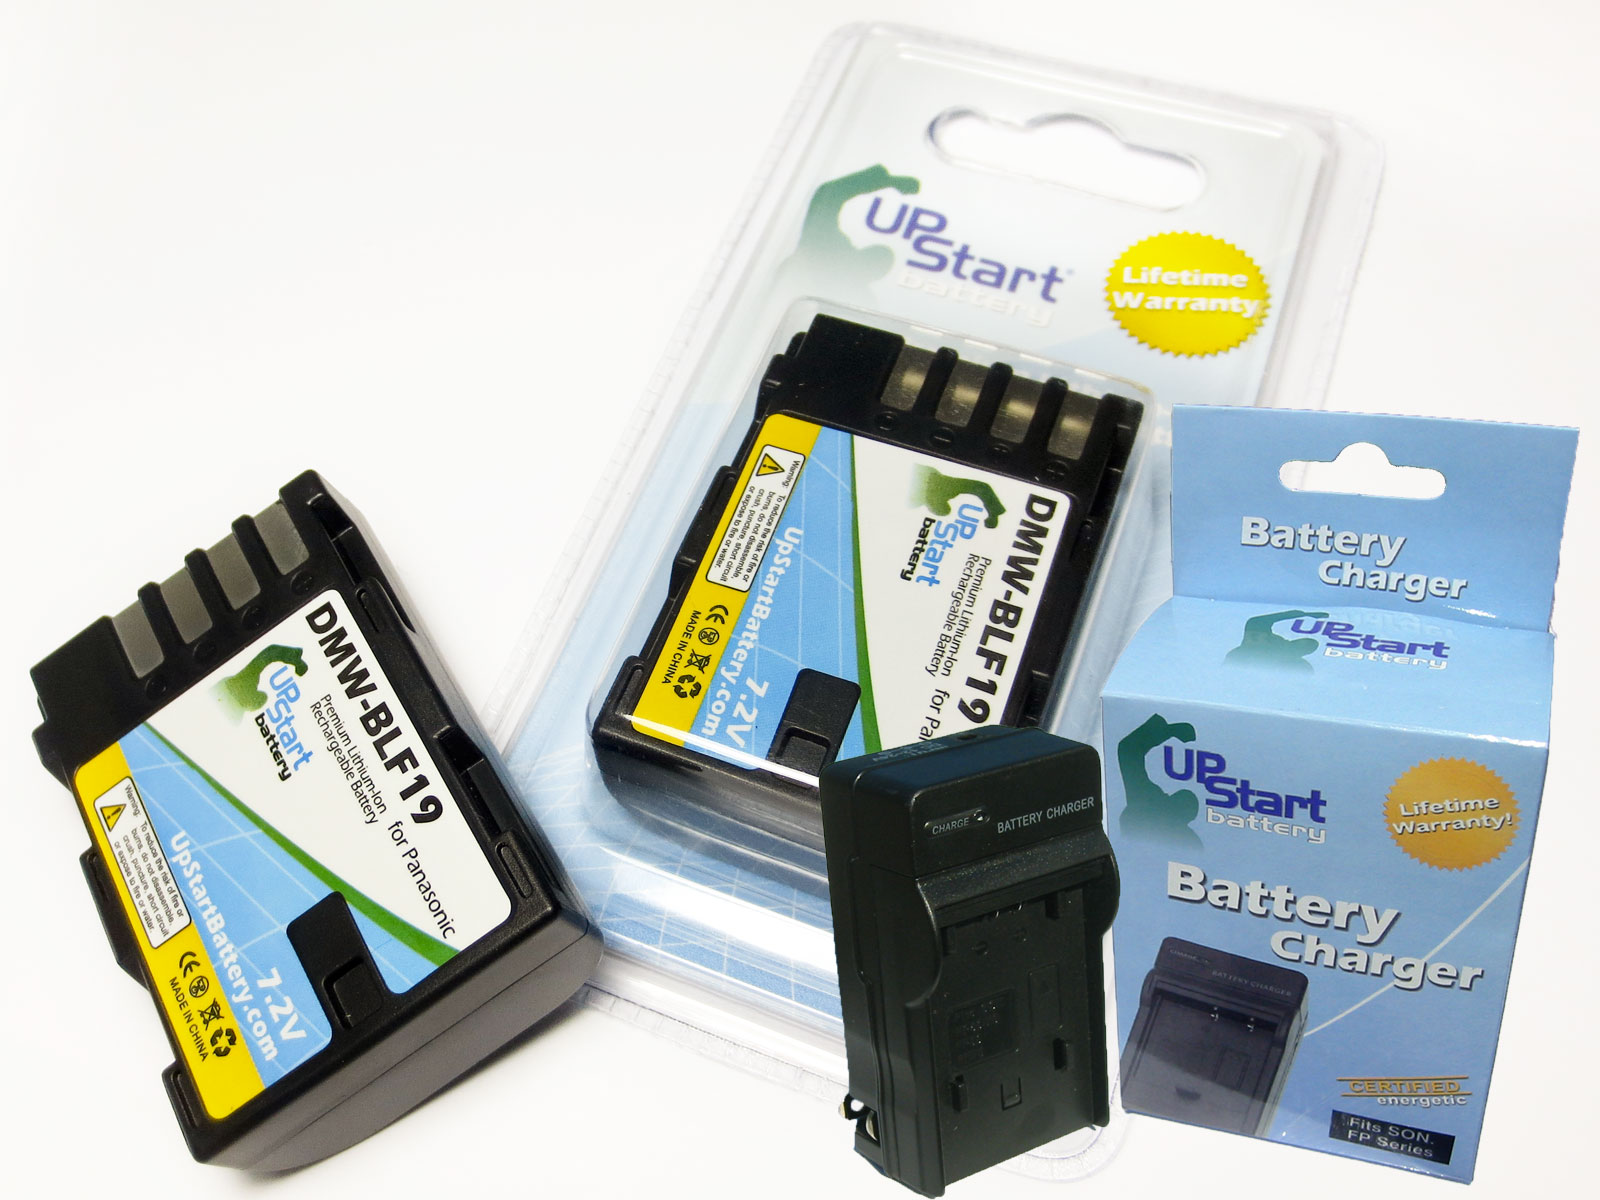 UpStart Battery 2x Pack - Panasonic Lumix DMC-GH3A Digital Camera Battery + Charger - Replacement Kit for Panasonic DMW-BLF19 at Sears.com